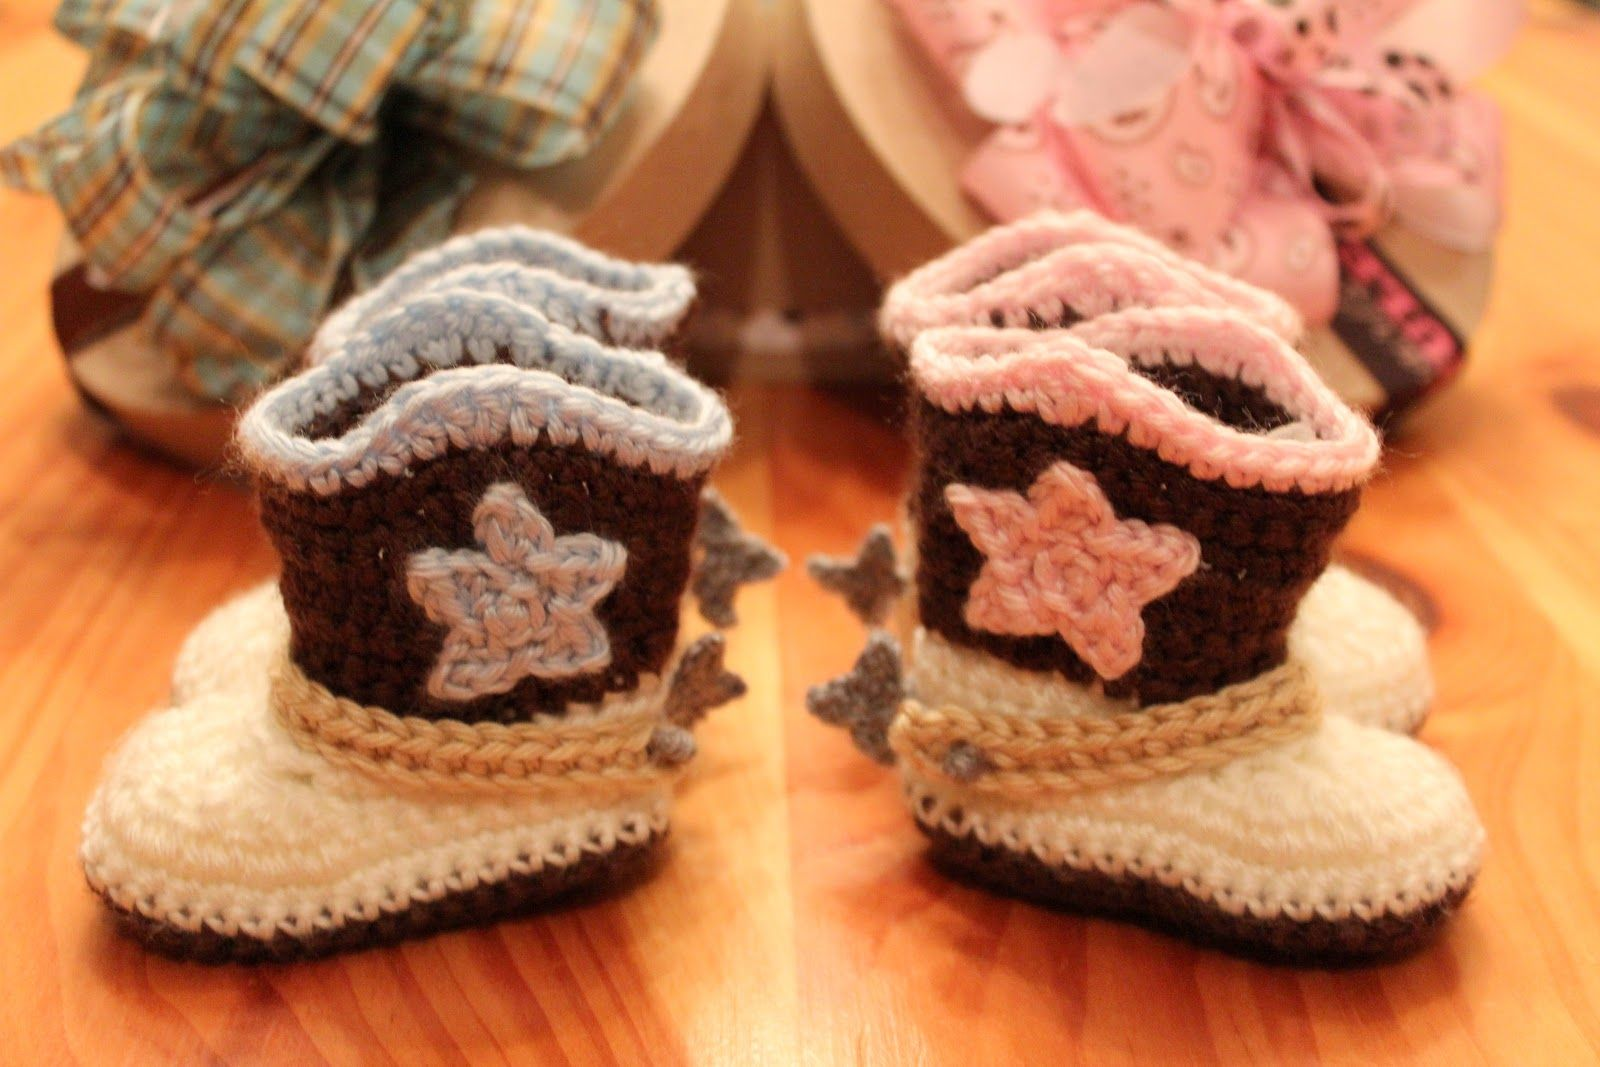 Free crochet pattern for cowboy booties google search crochet free crochet pattern for cowboy booties google search bankloansurffo Choice Image